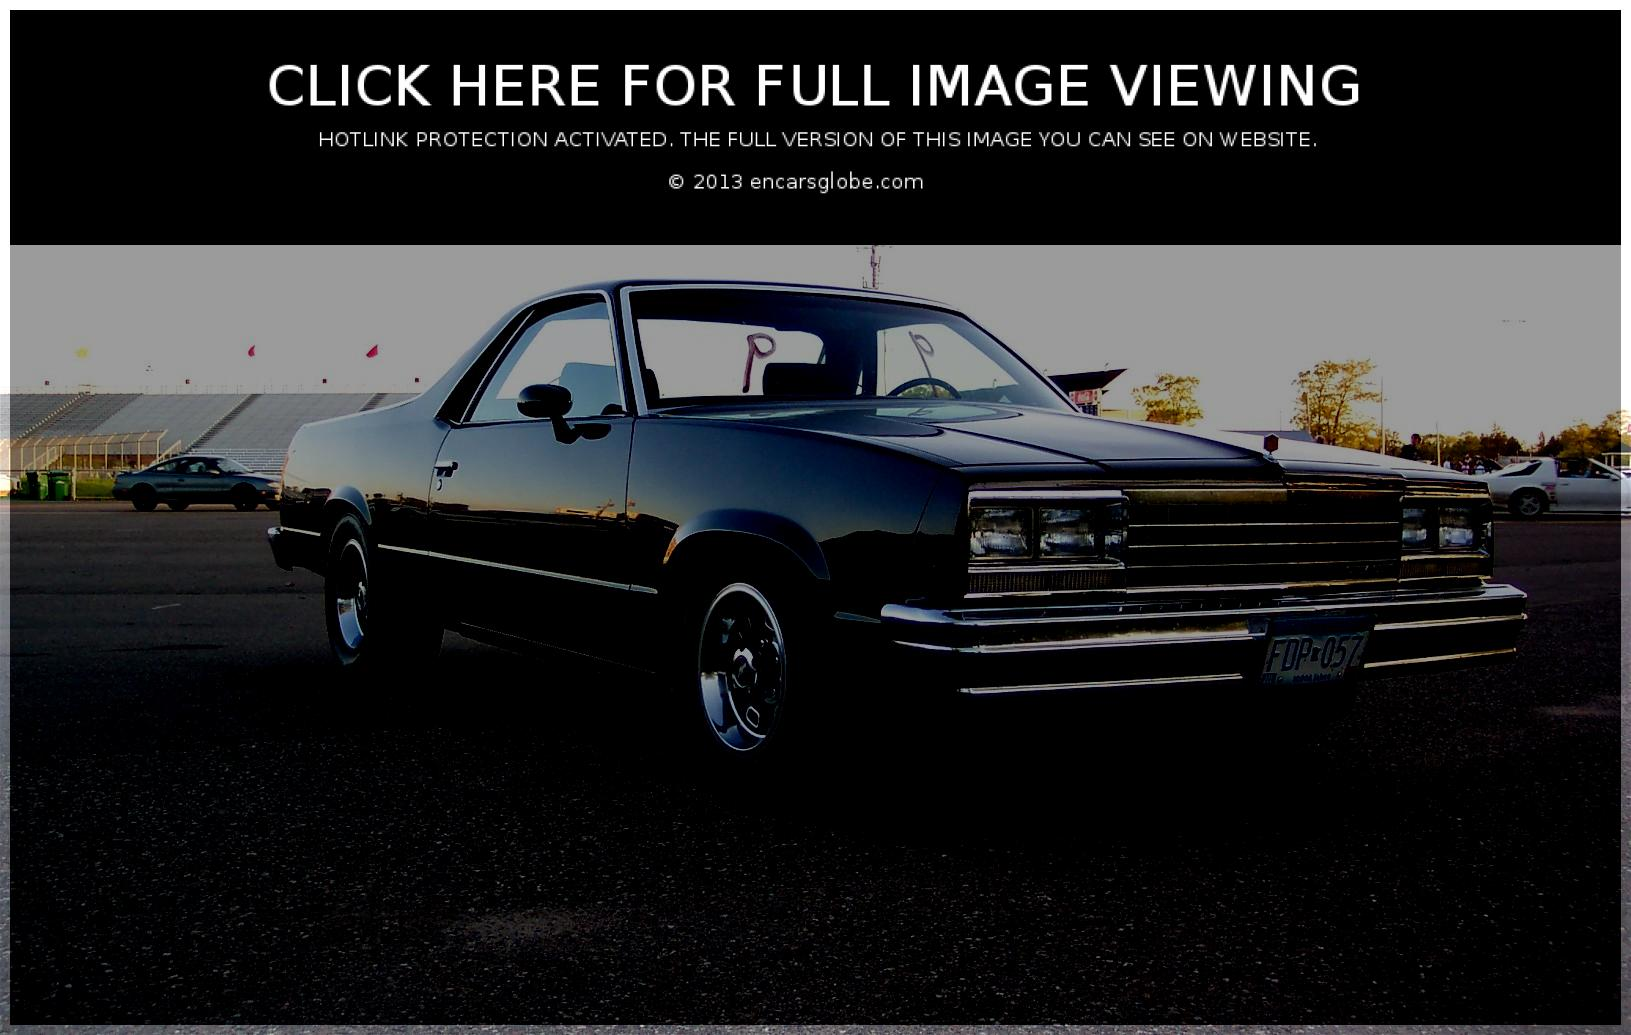 Chevrolet El Camino: Description of the model, photo gallery ...